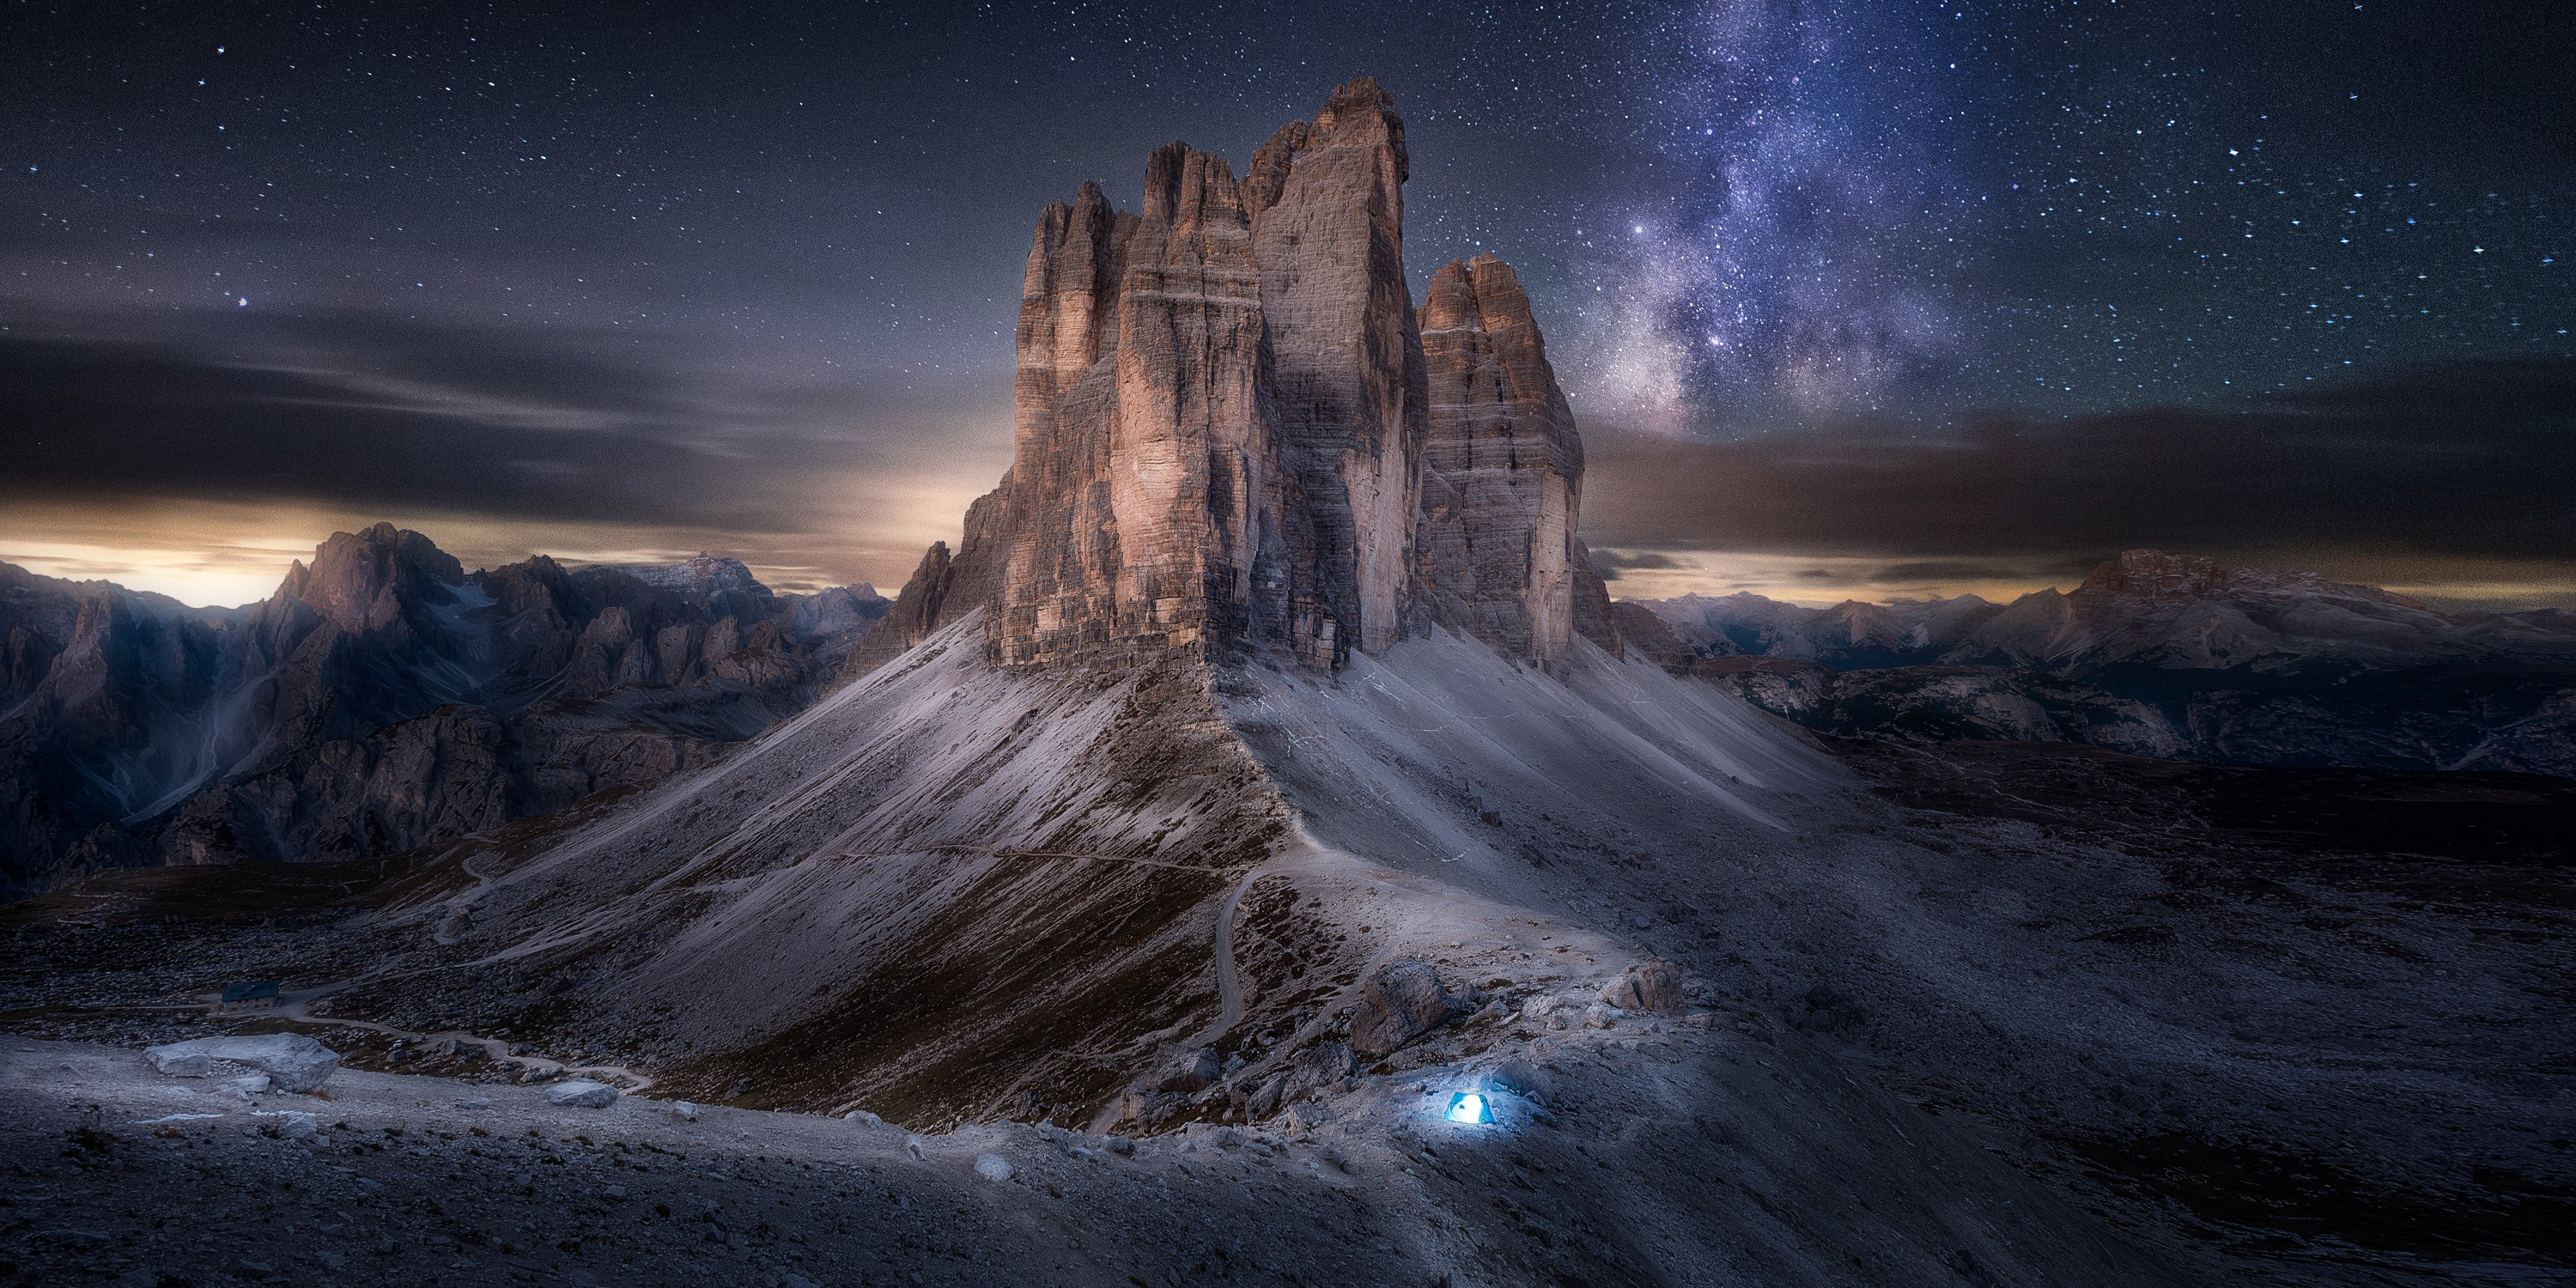 A small range of mountains that looks almost like a castle is backed by a blue/black sky packed with bright white stars